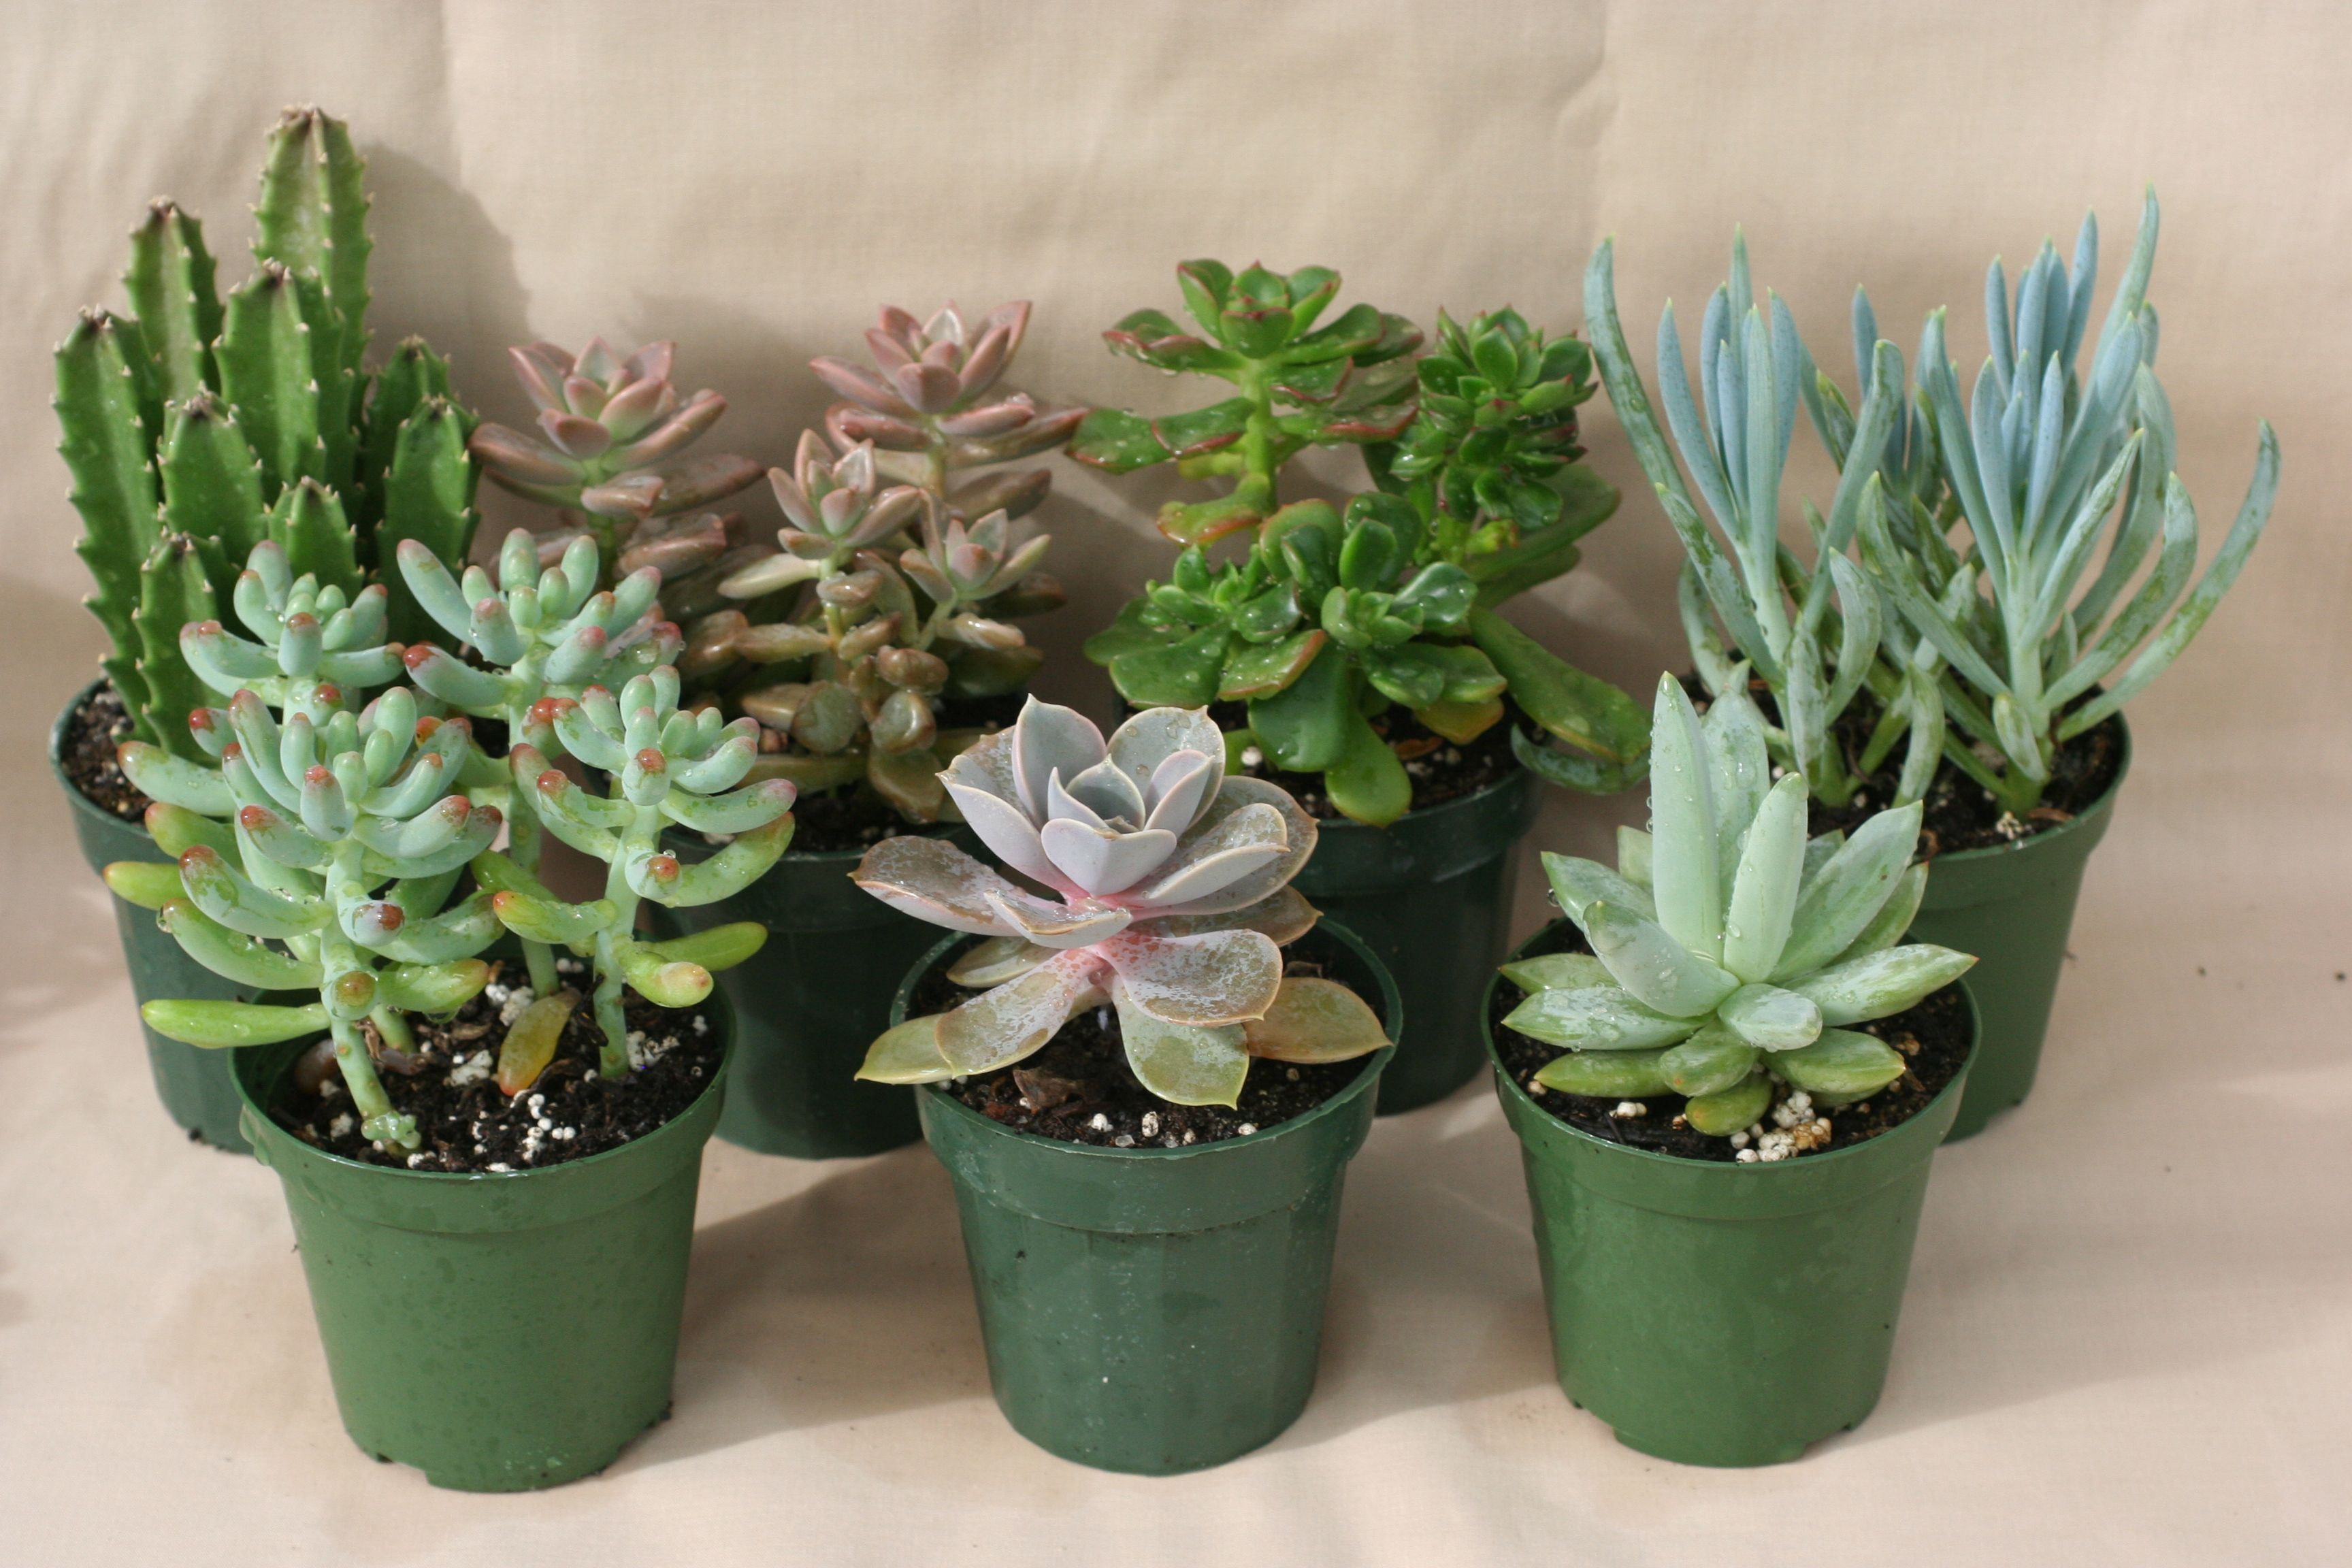 Succulents Are Some Of The World S Most Por Houseplants They Re Very Undemanding Beautiful And Varied Find Out How To Care For Nine Our Favorite